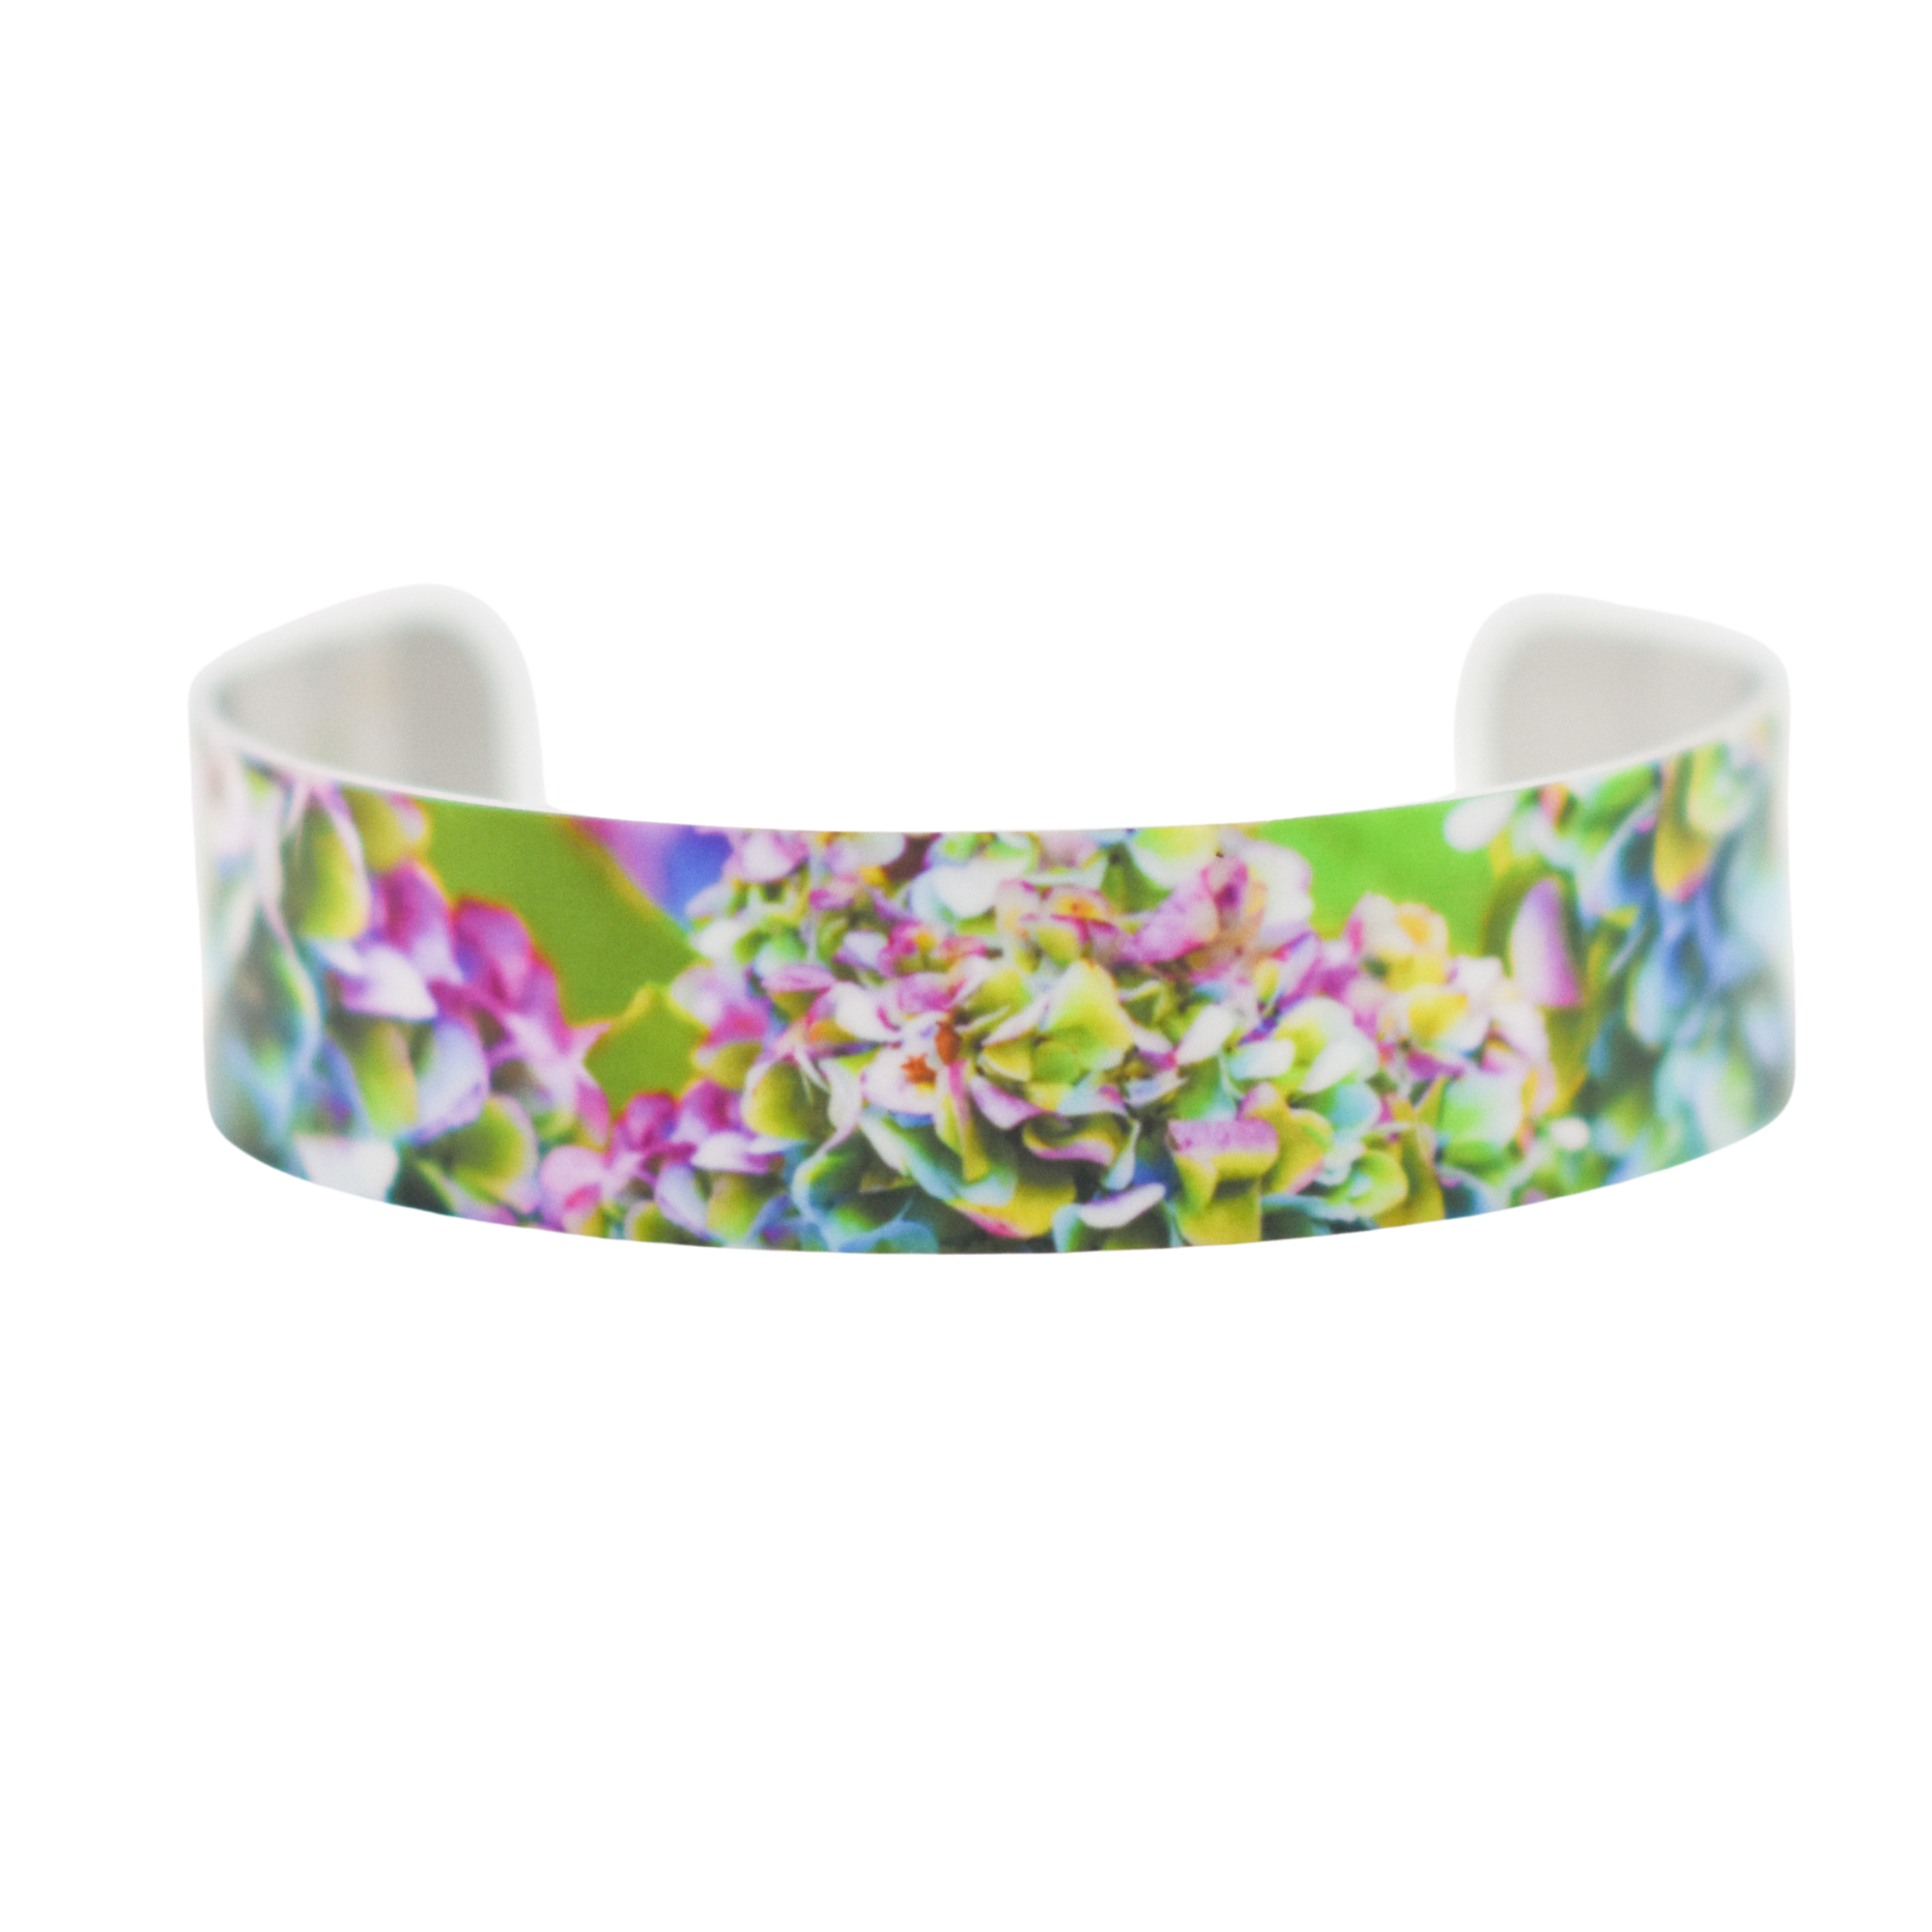 Standard view of Heavenly Hydrangea Narrow Cuff Bracelet | Wear the Wonder